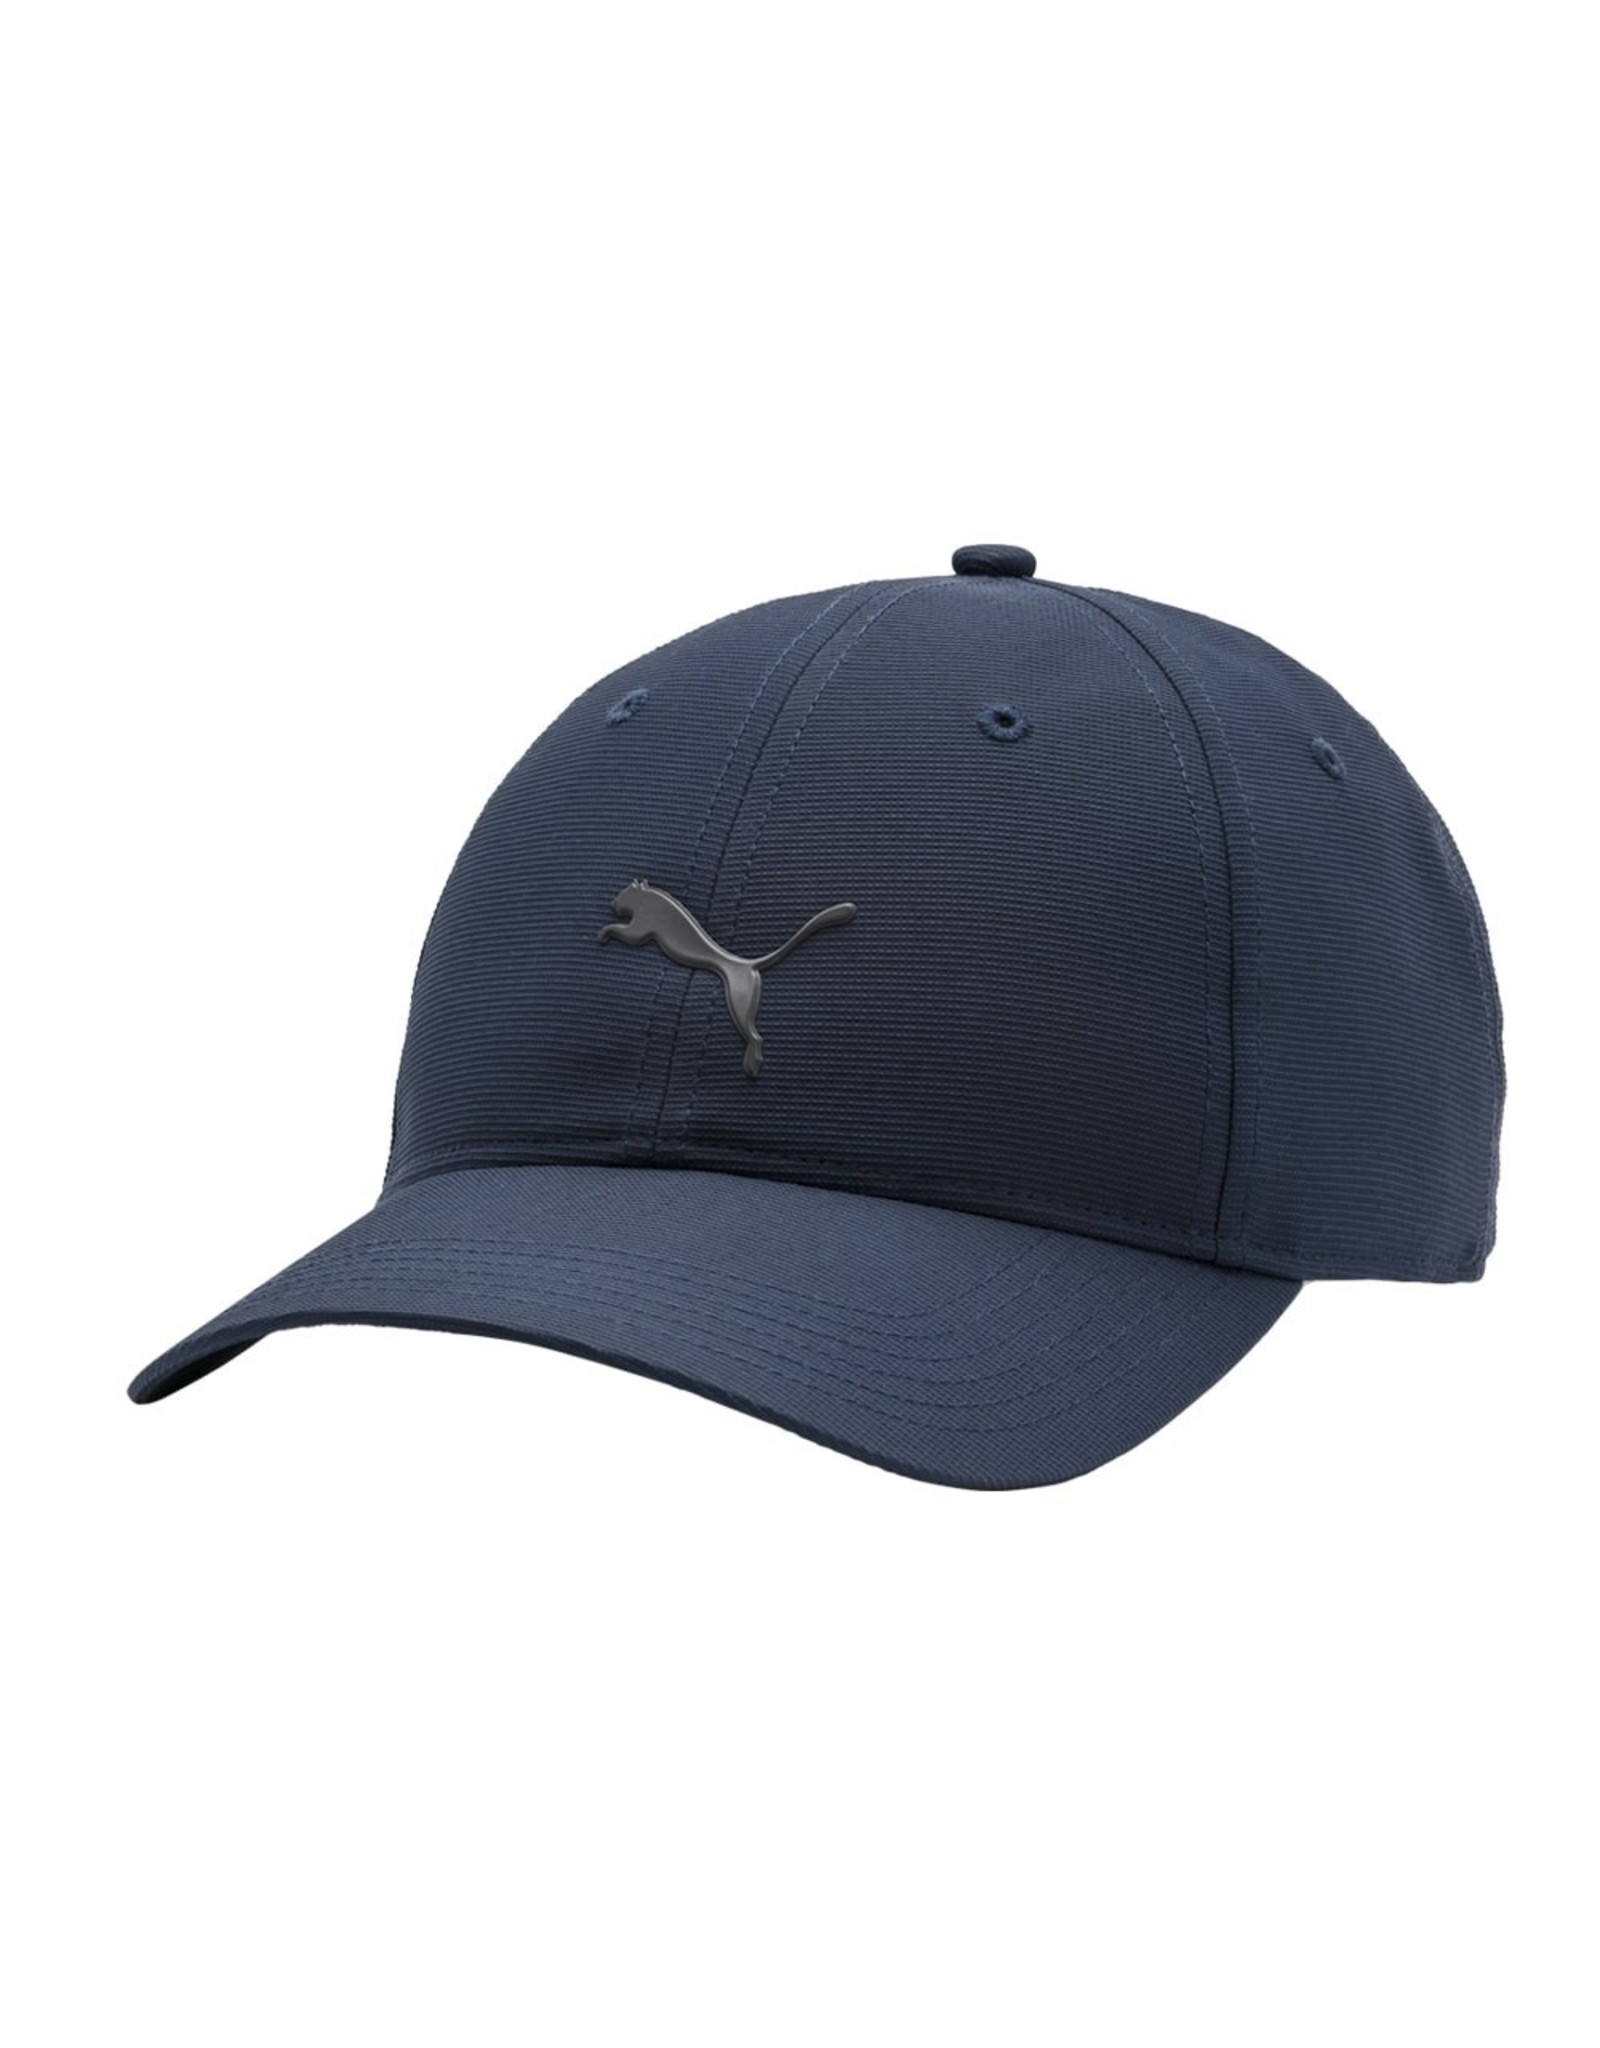 Puma Golf Puma Pounce Adjustable Cap